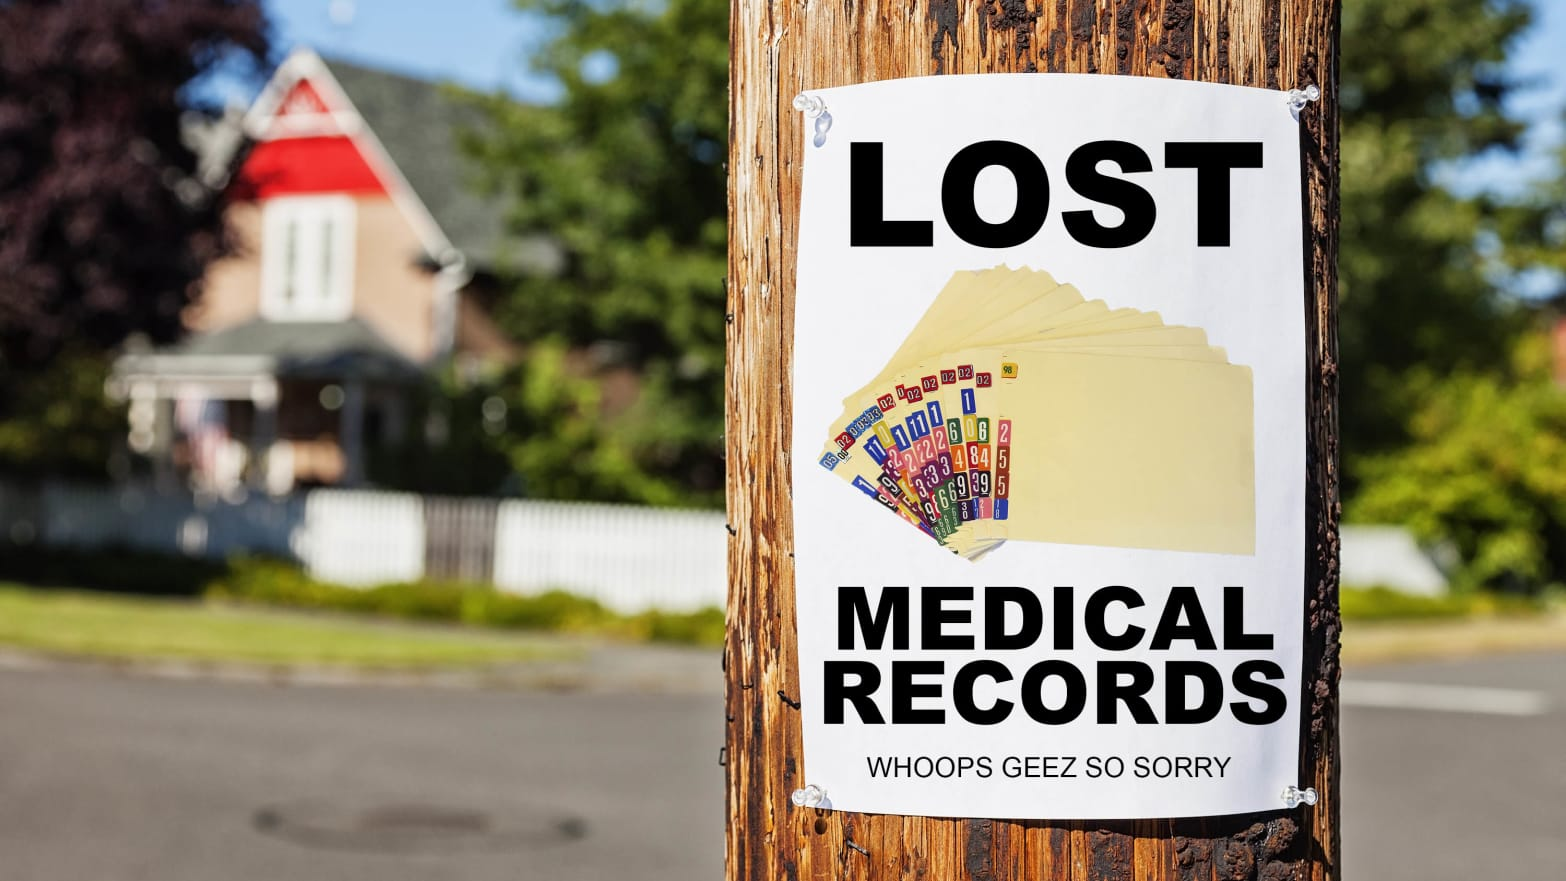 Why Is It So Hard to Match Patients With Their Medical Records?